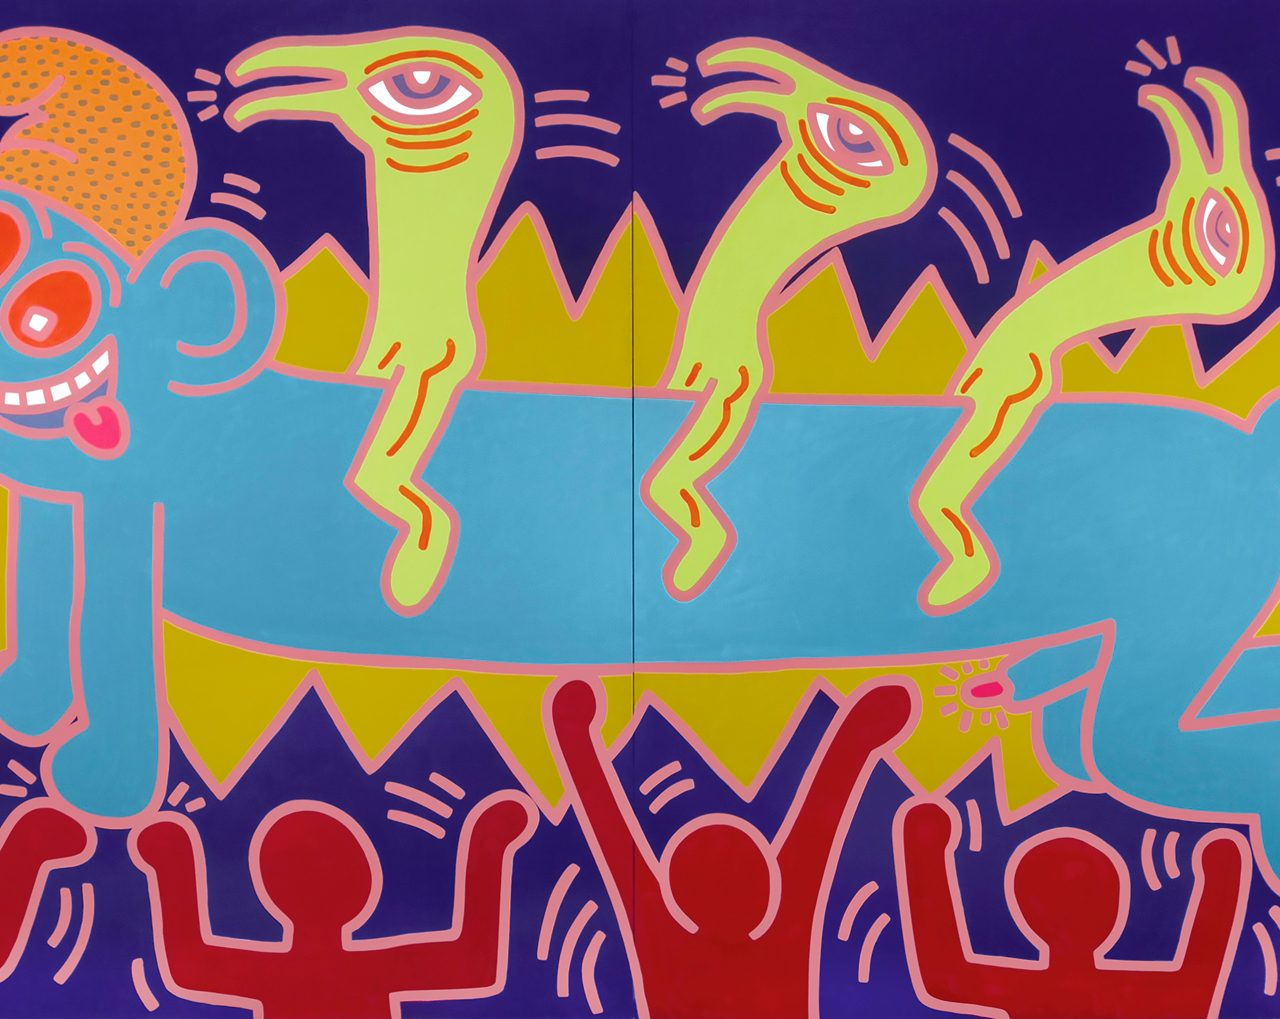 Opera Gallery Celebrates 25 Years With Keith Haring and Pablo Picasso at Masterpiece 2019